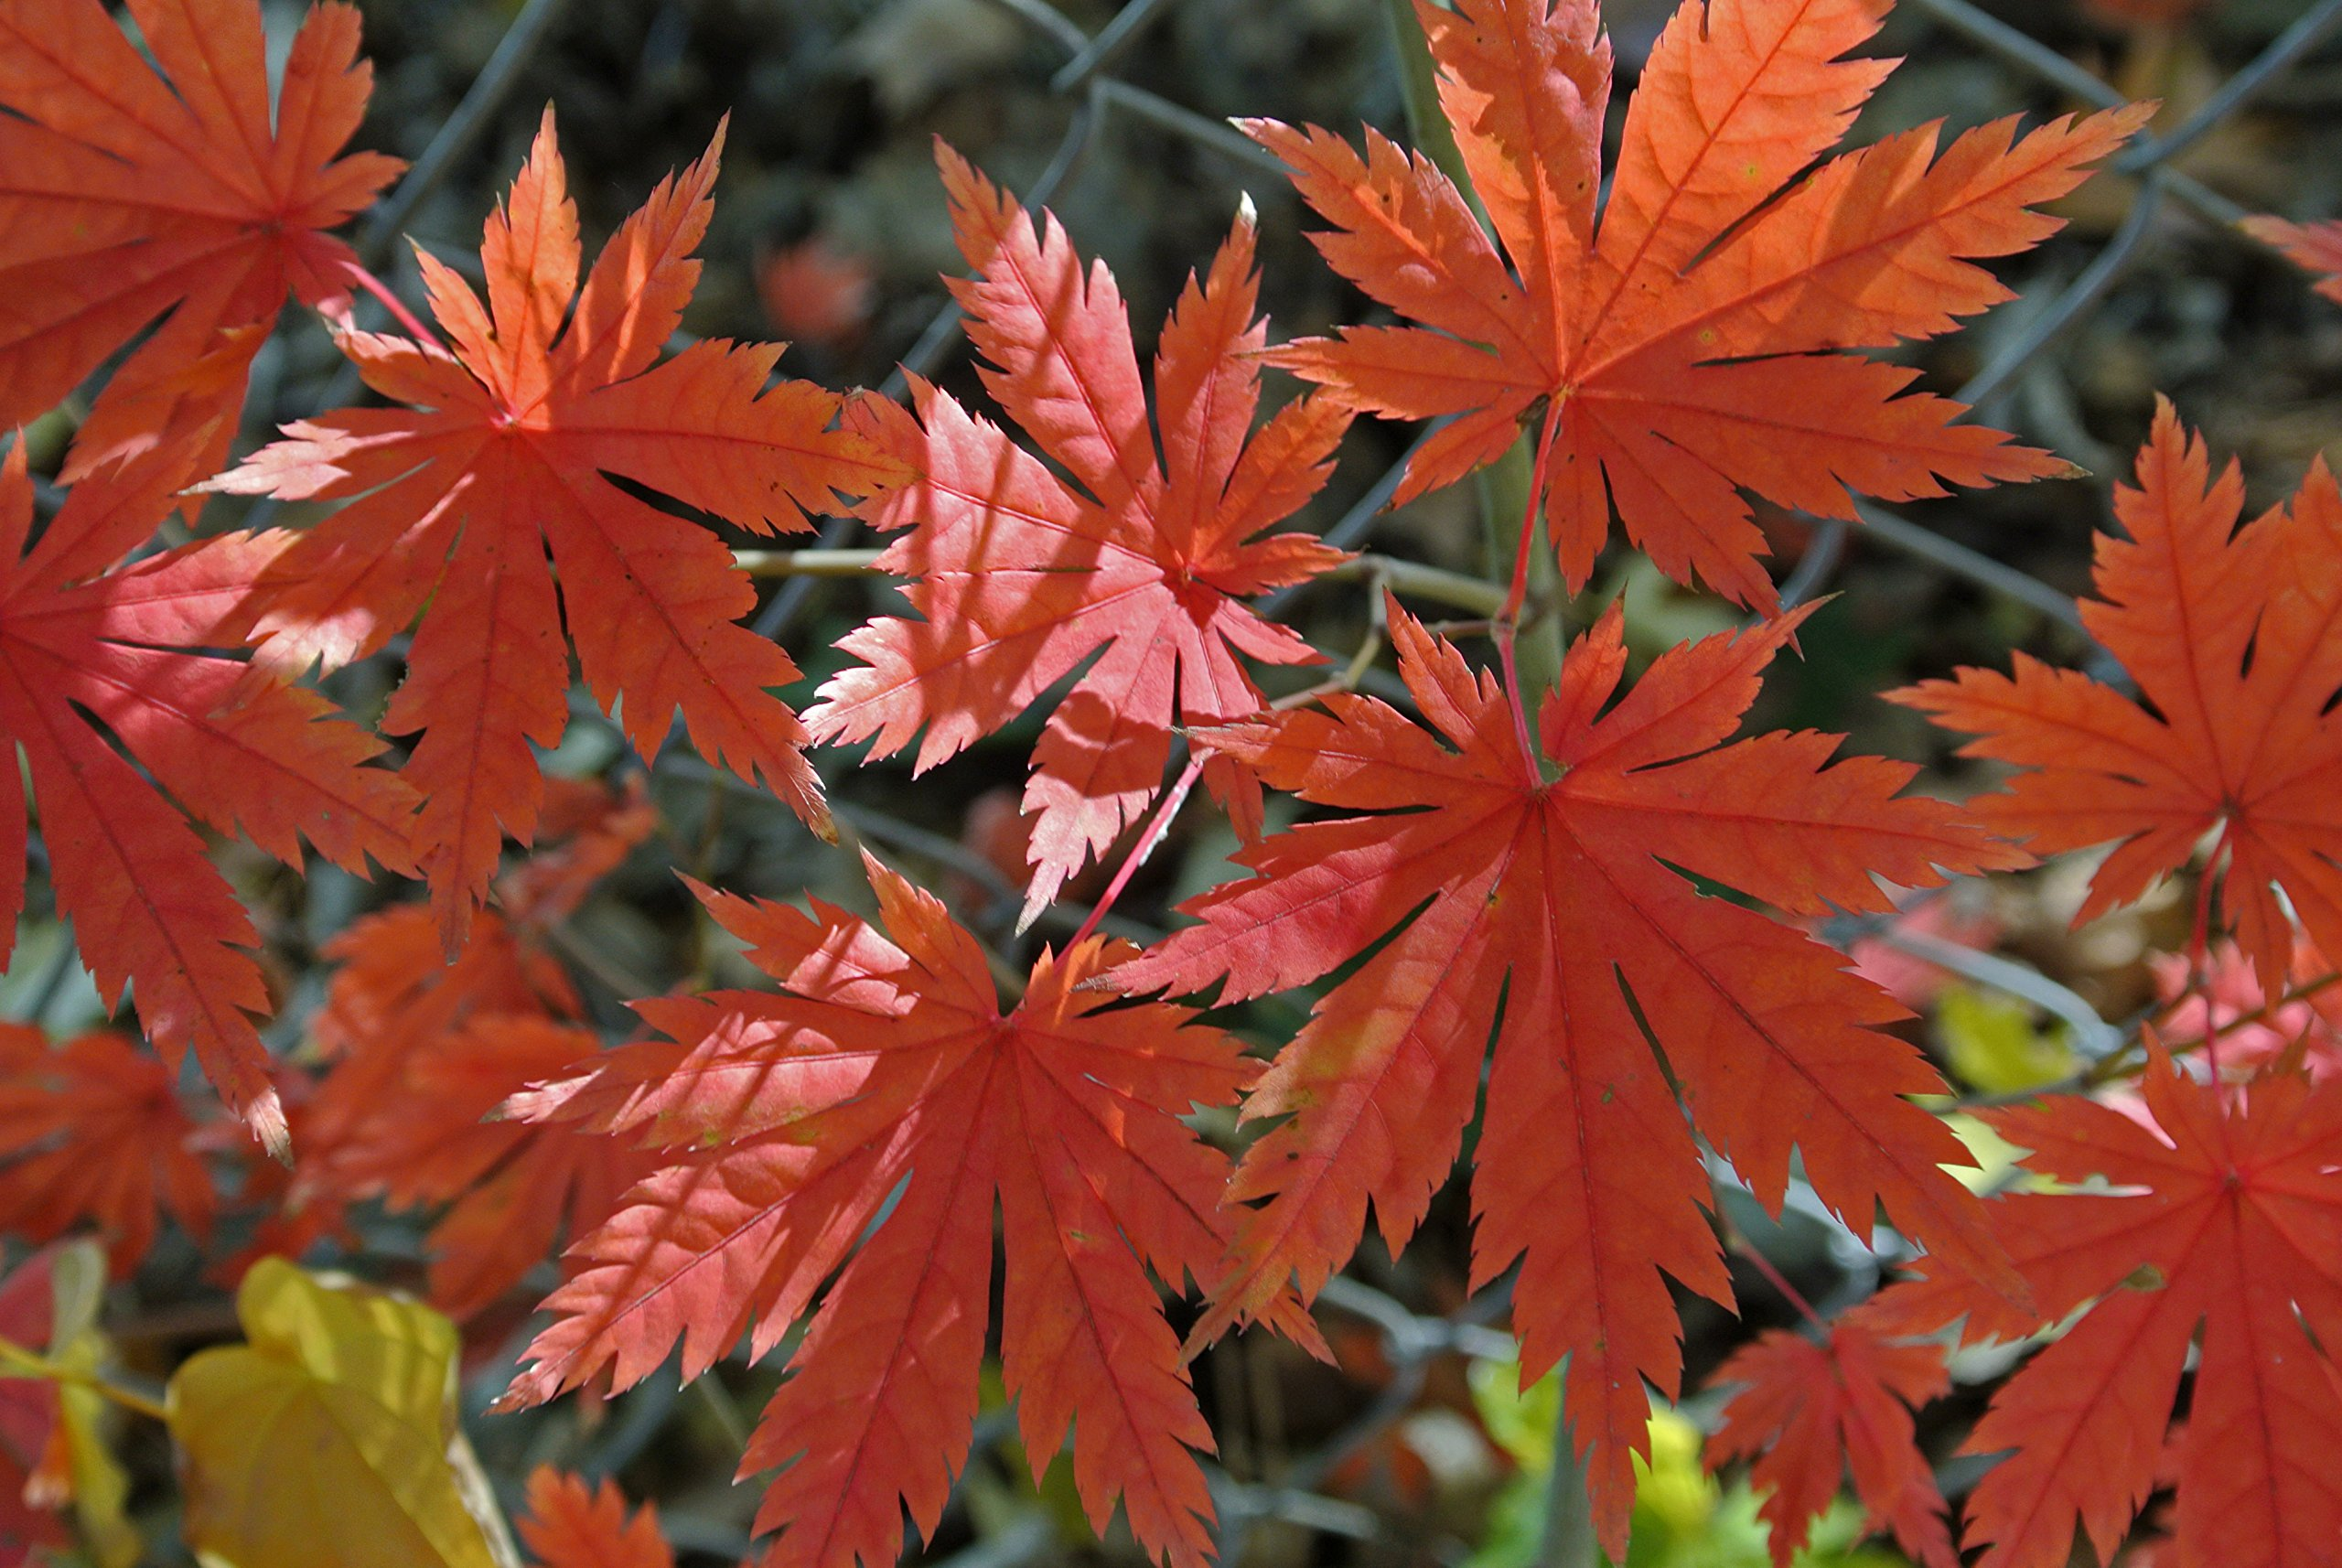 Korean Maple - Tolerates Extreme Cold, Surviving In Climates Where Japanese Maples Cannot, Hardy to -40F - 2 Year Live Plant by Japanese Maples and Evergreens (Image #1)